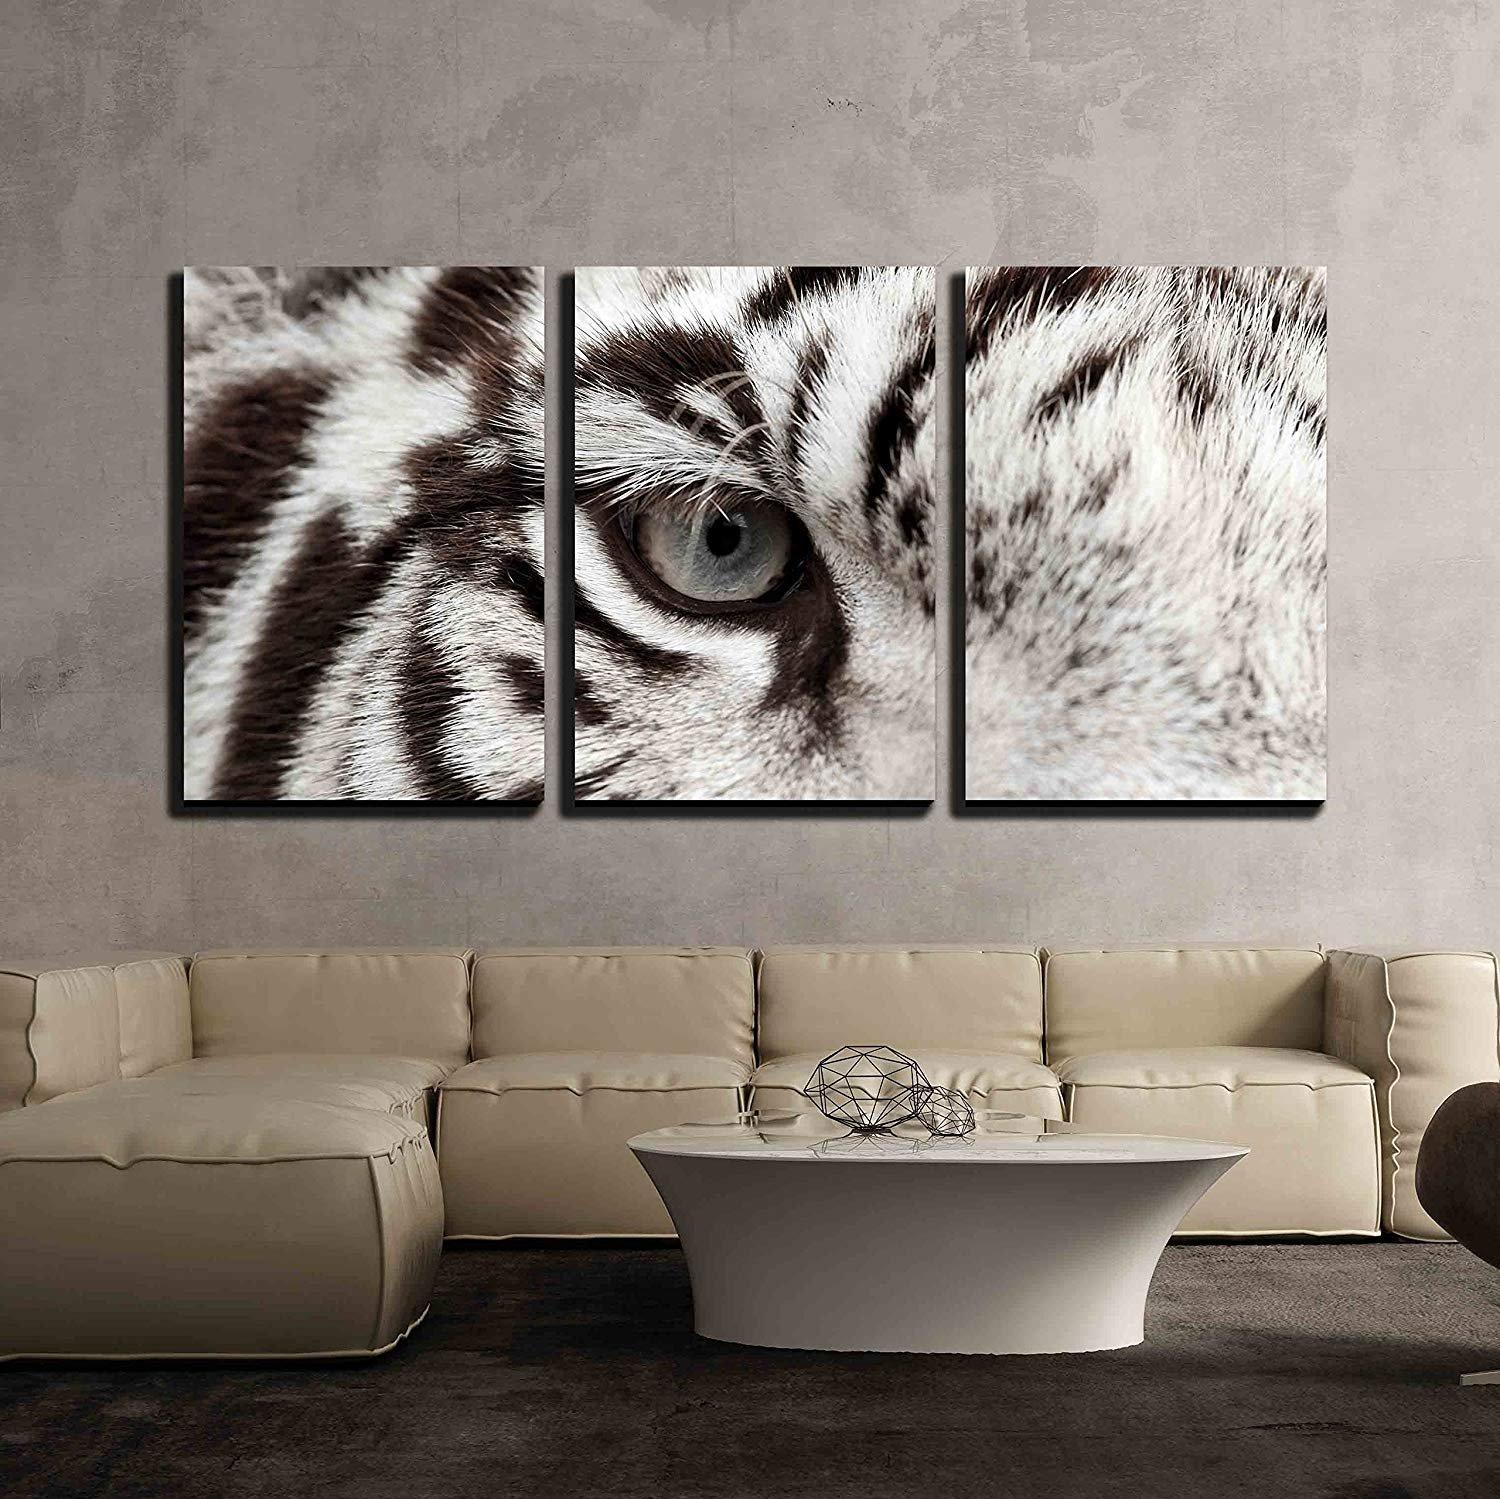 wall26 - 3 Piece Canvas Wall Art - Close Up of White Bengal Tiger Eye - Modern Home Decor Stretched and Framed Ready to Hang - 16''x24''x3 Panels by wall26 (Image #2)